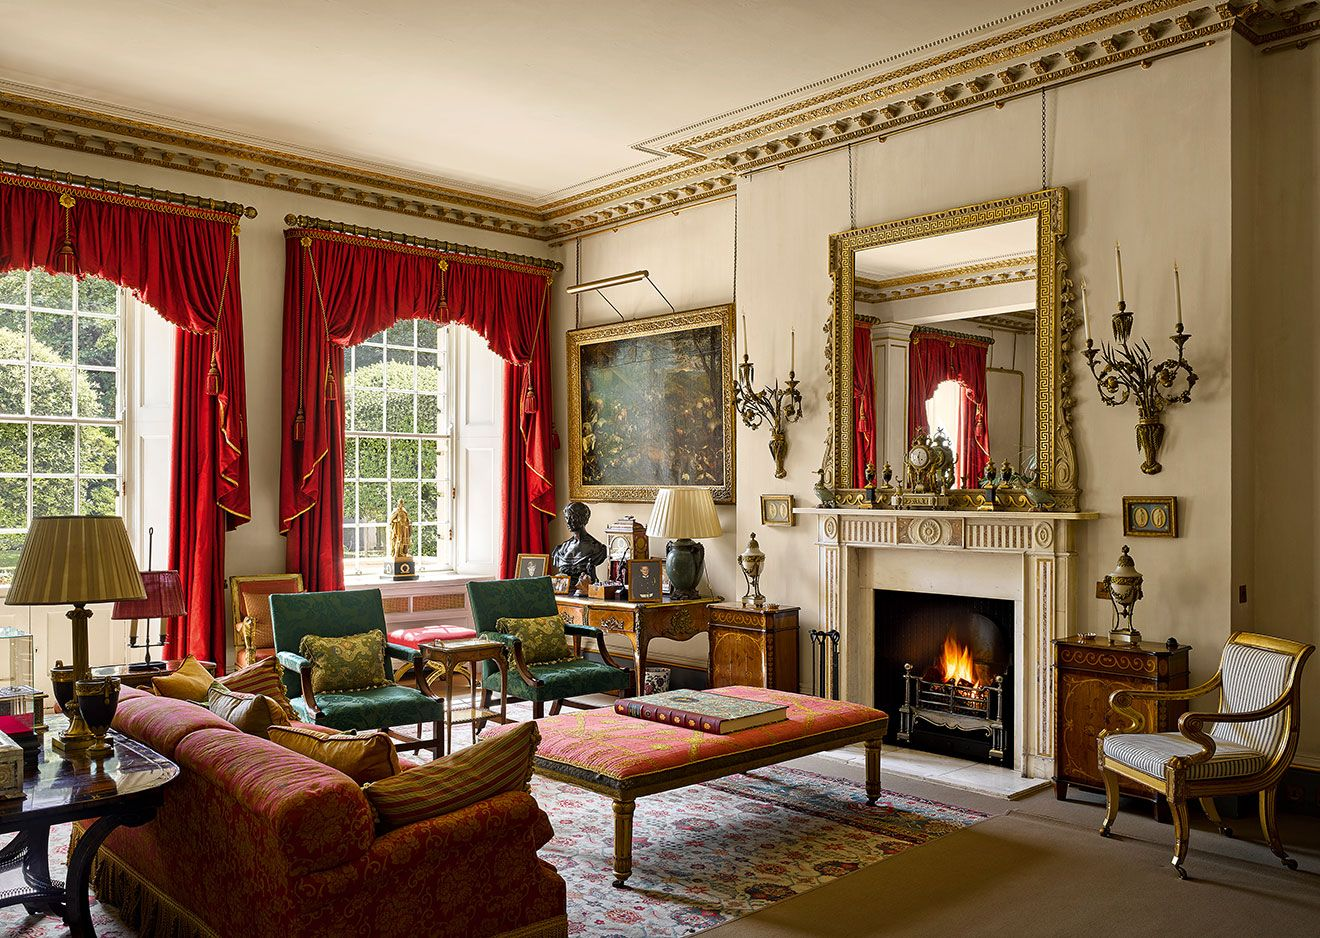 Clarence house photographed by will pryce for the country